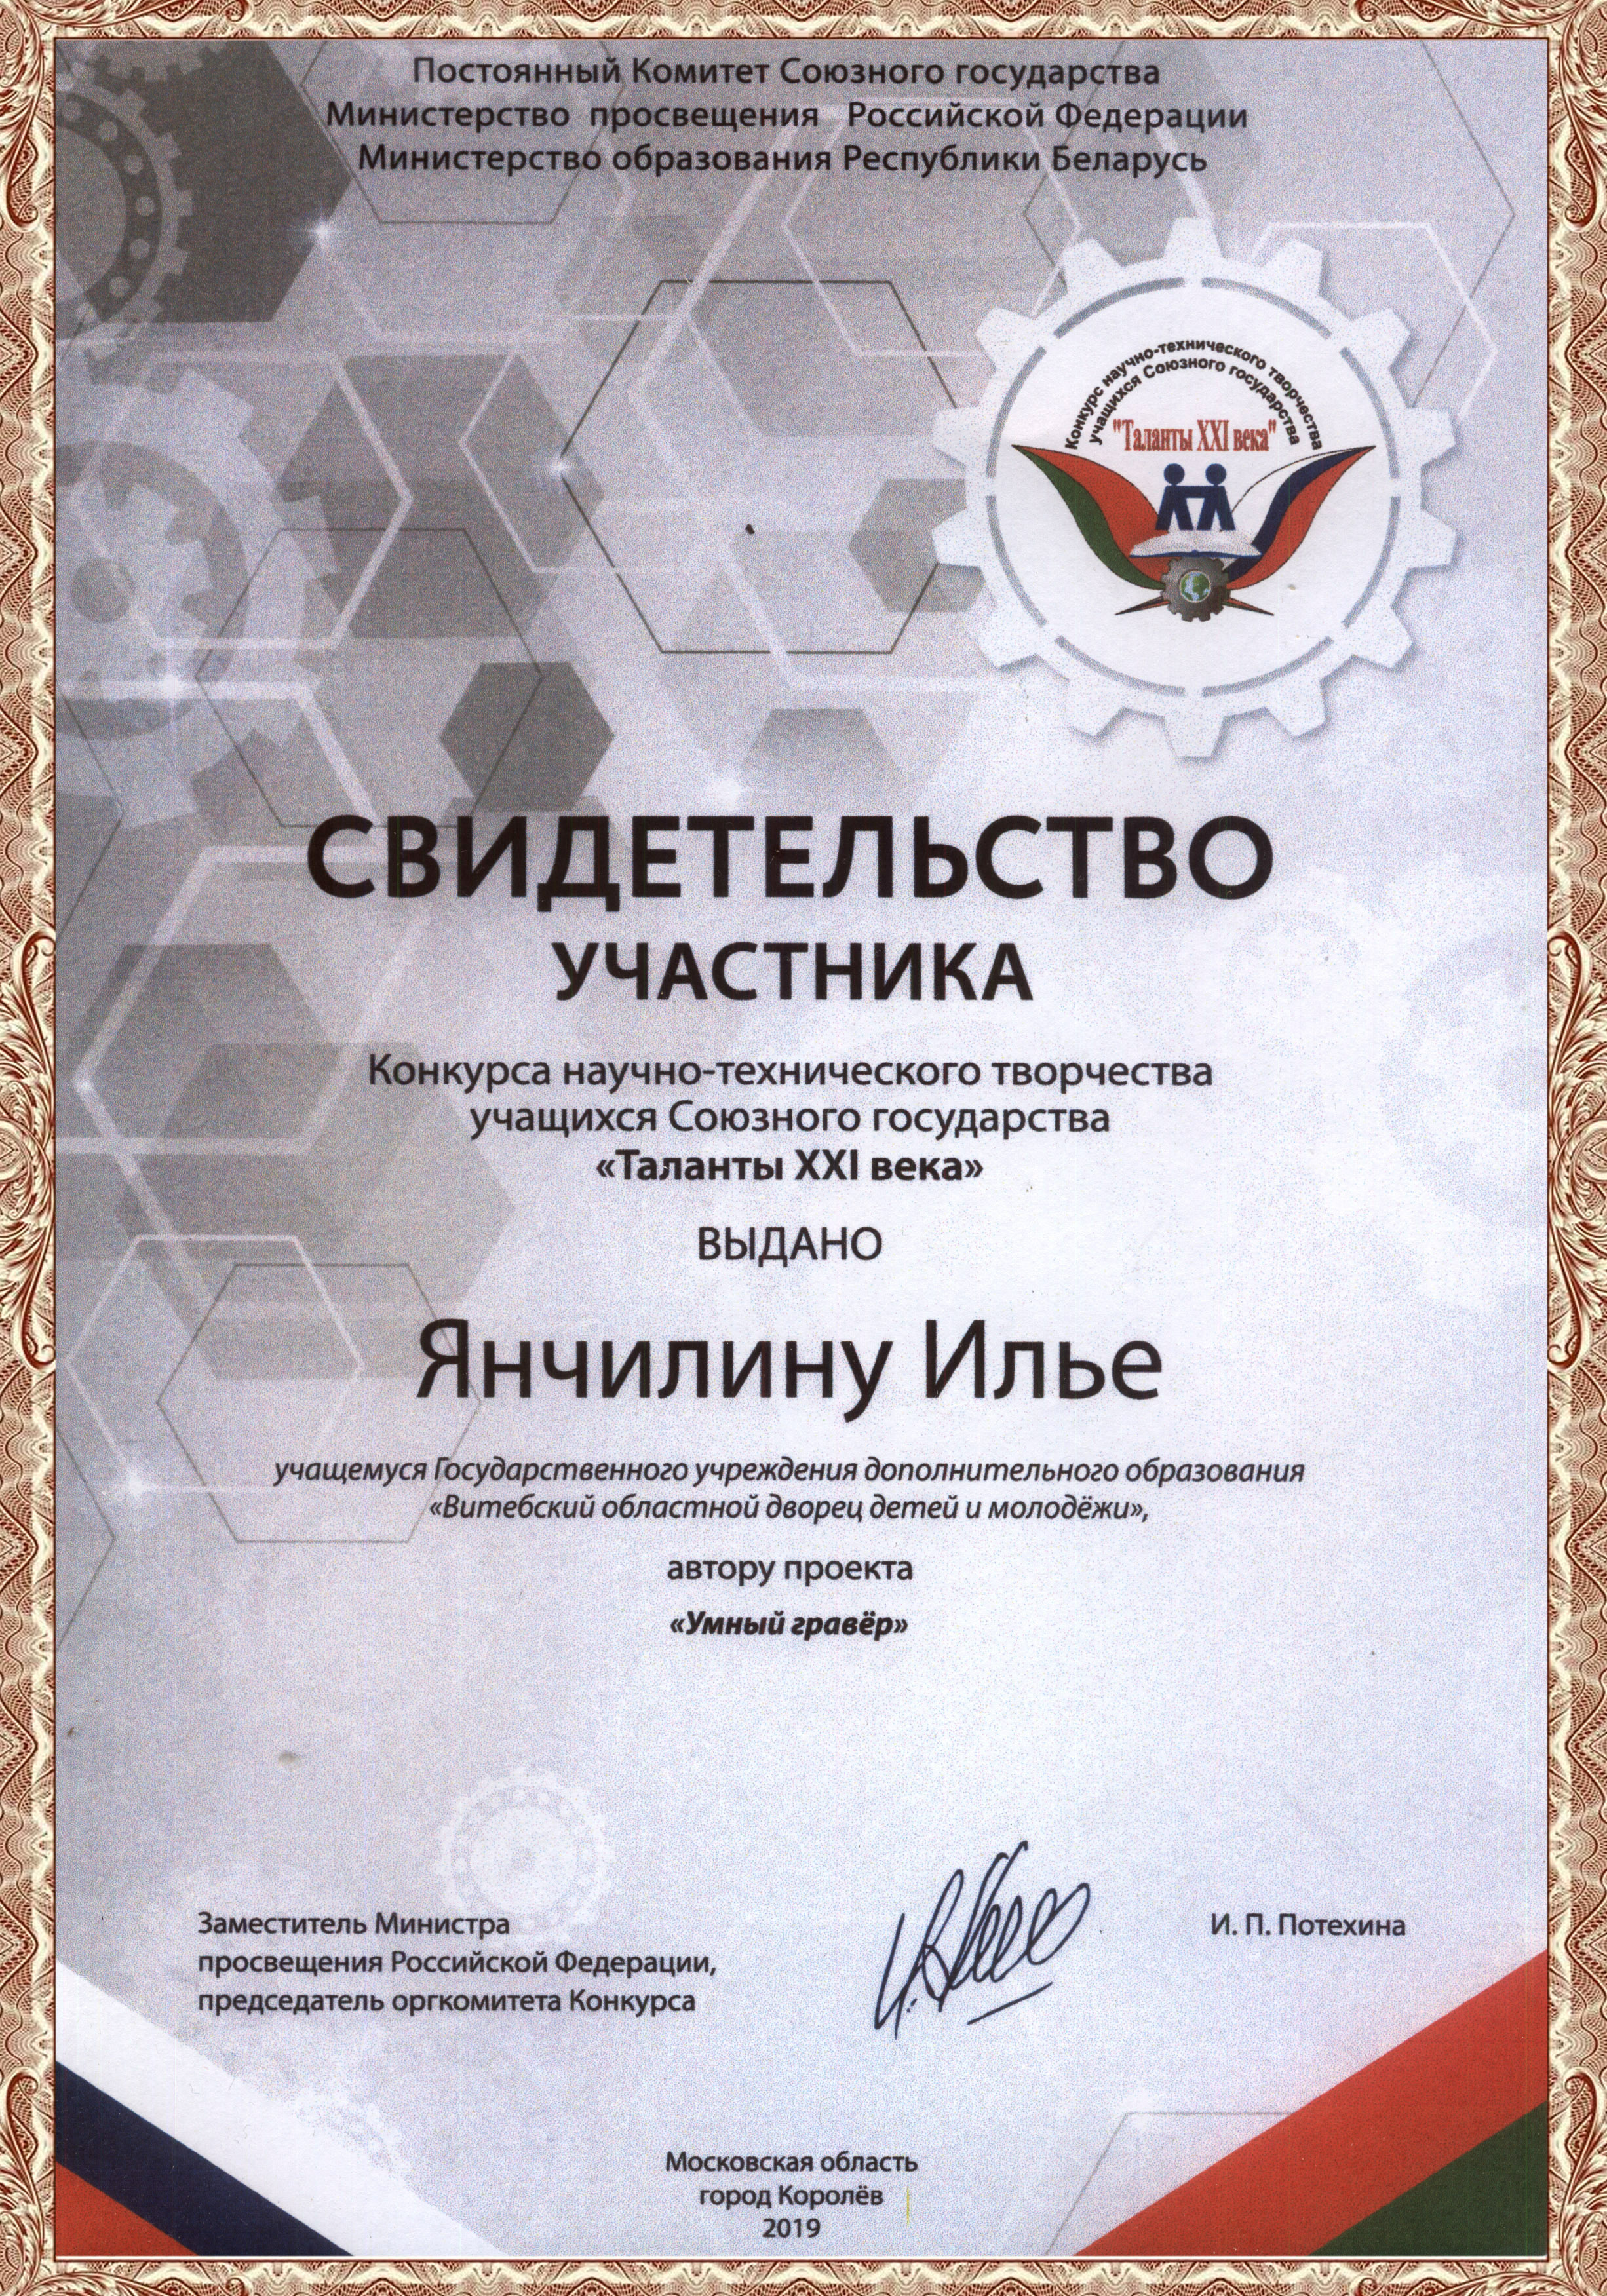 Certificate Yanchilin Talent 2019